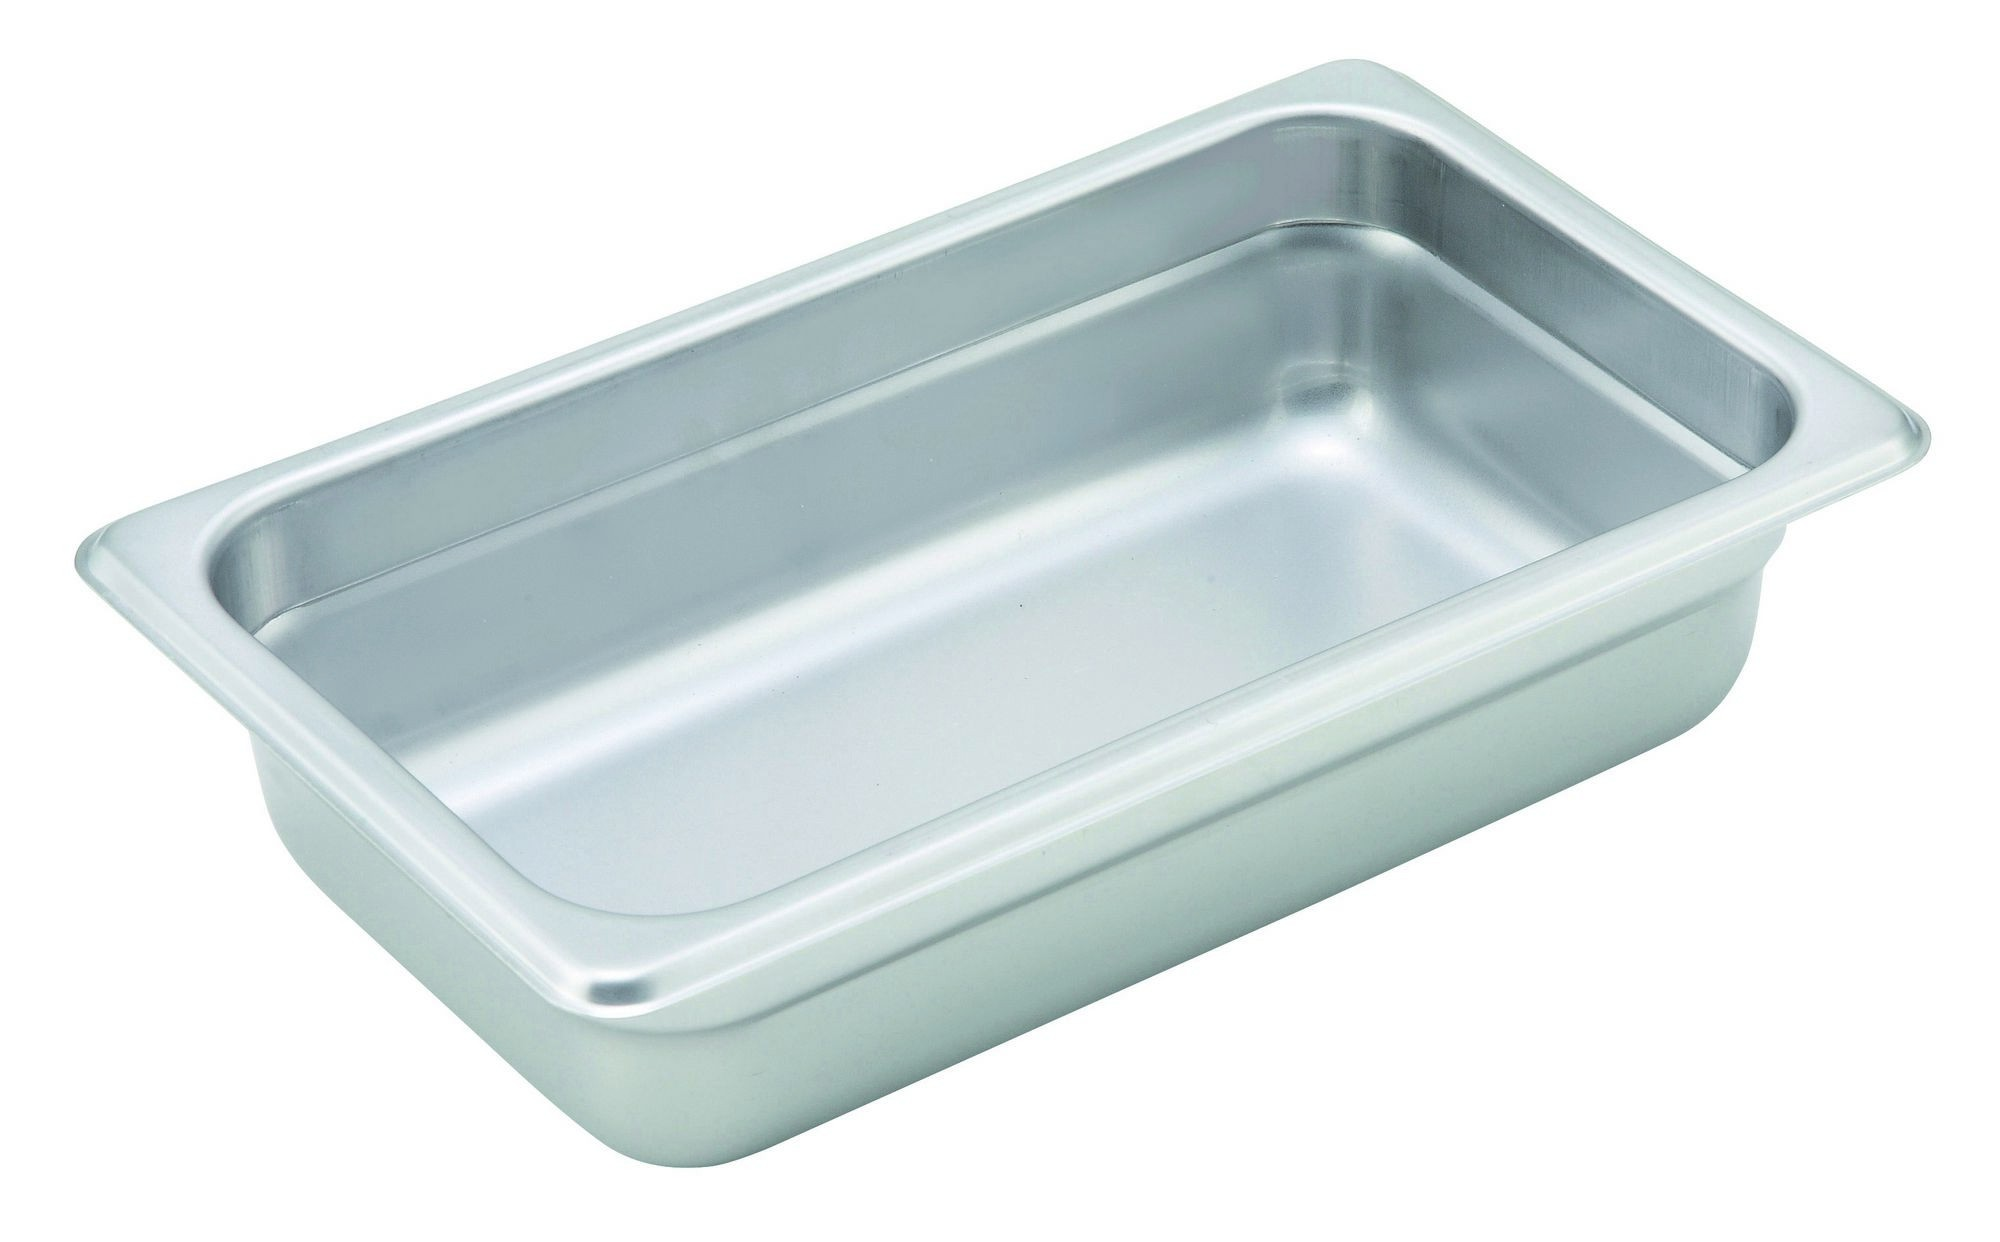 "Winco SPJH-402 1/4 Size Anti-Jam 22 Gauge Steam Table Pan 2-1/2"" Deep"